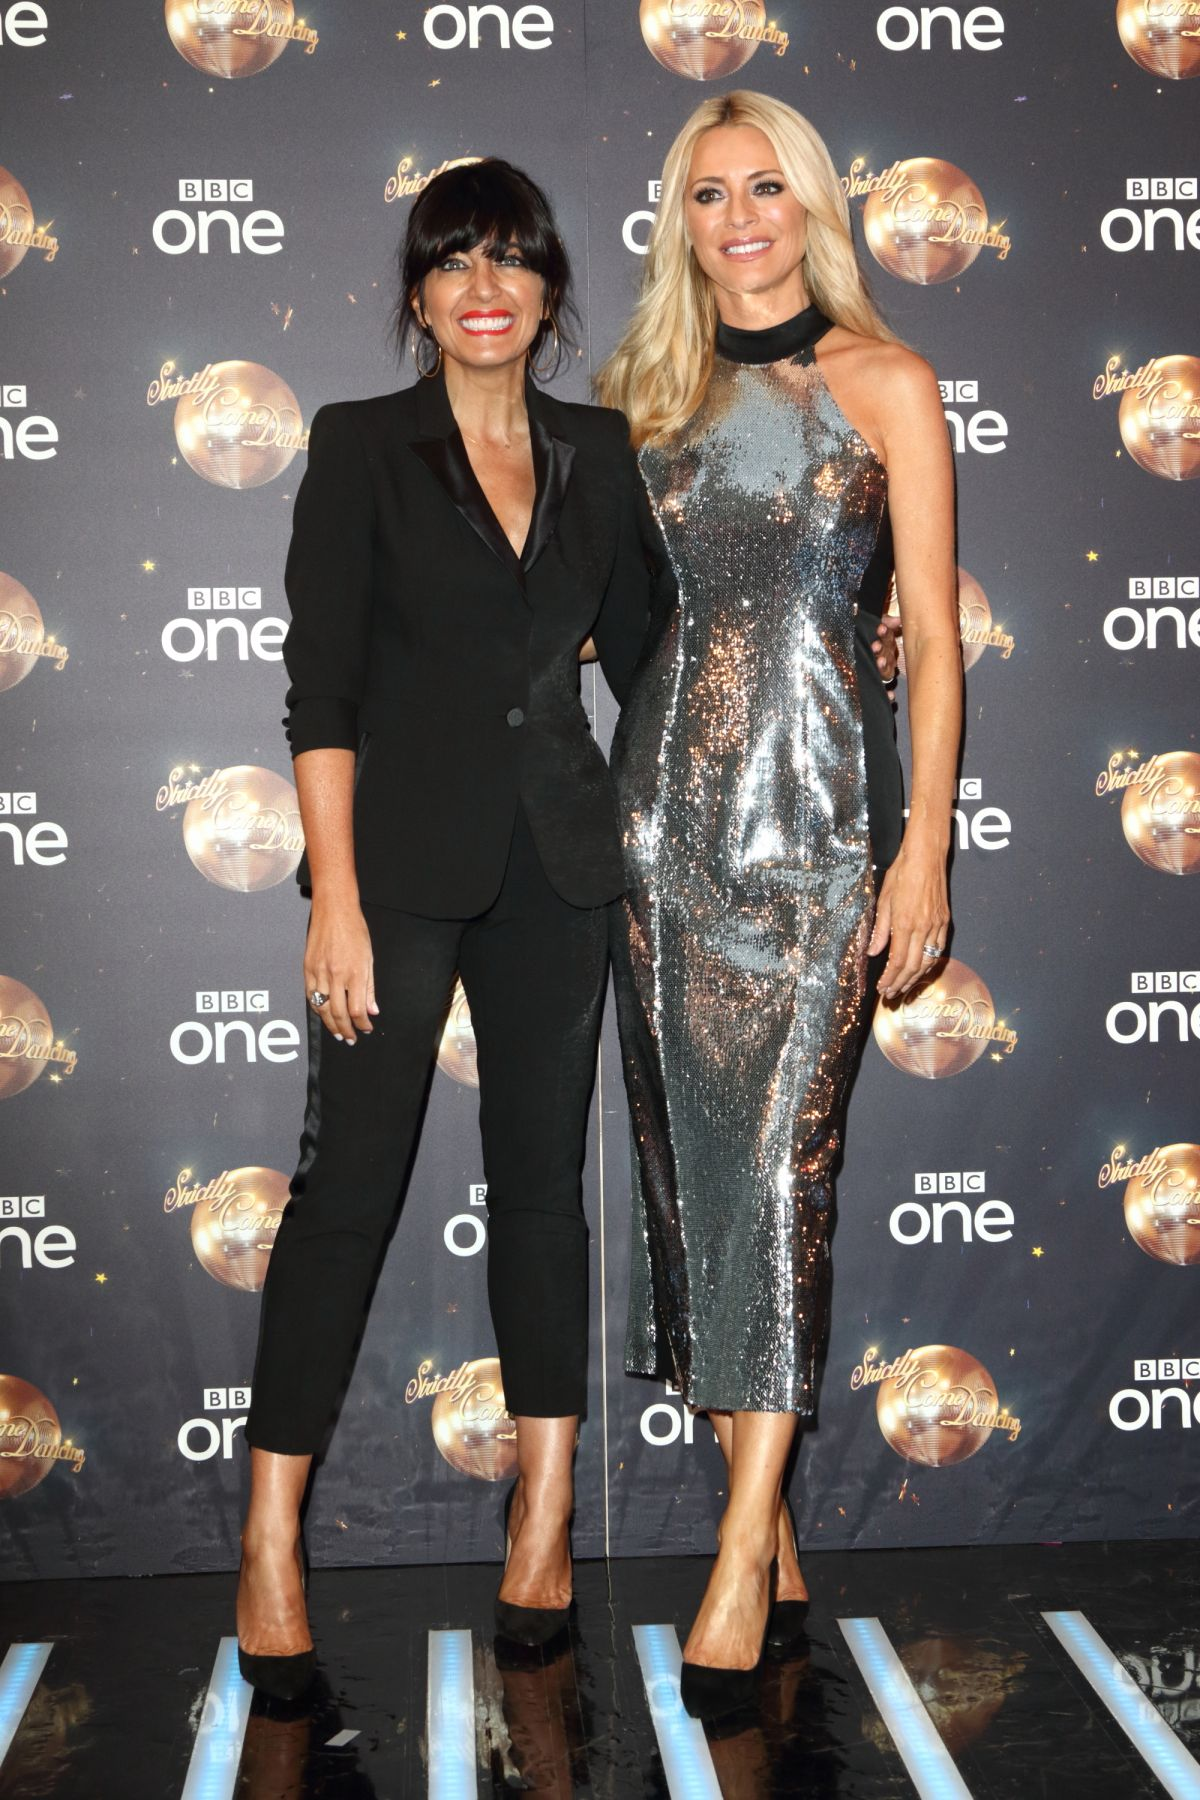 Watch Claudia Winkleman and Tess Daly reveal Strictly line-up news as filming finally starts video